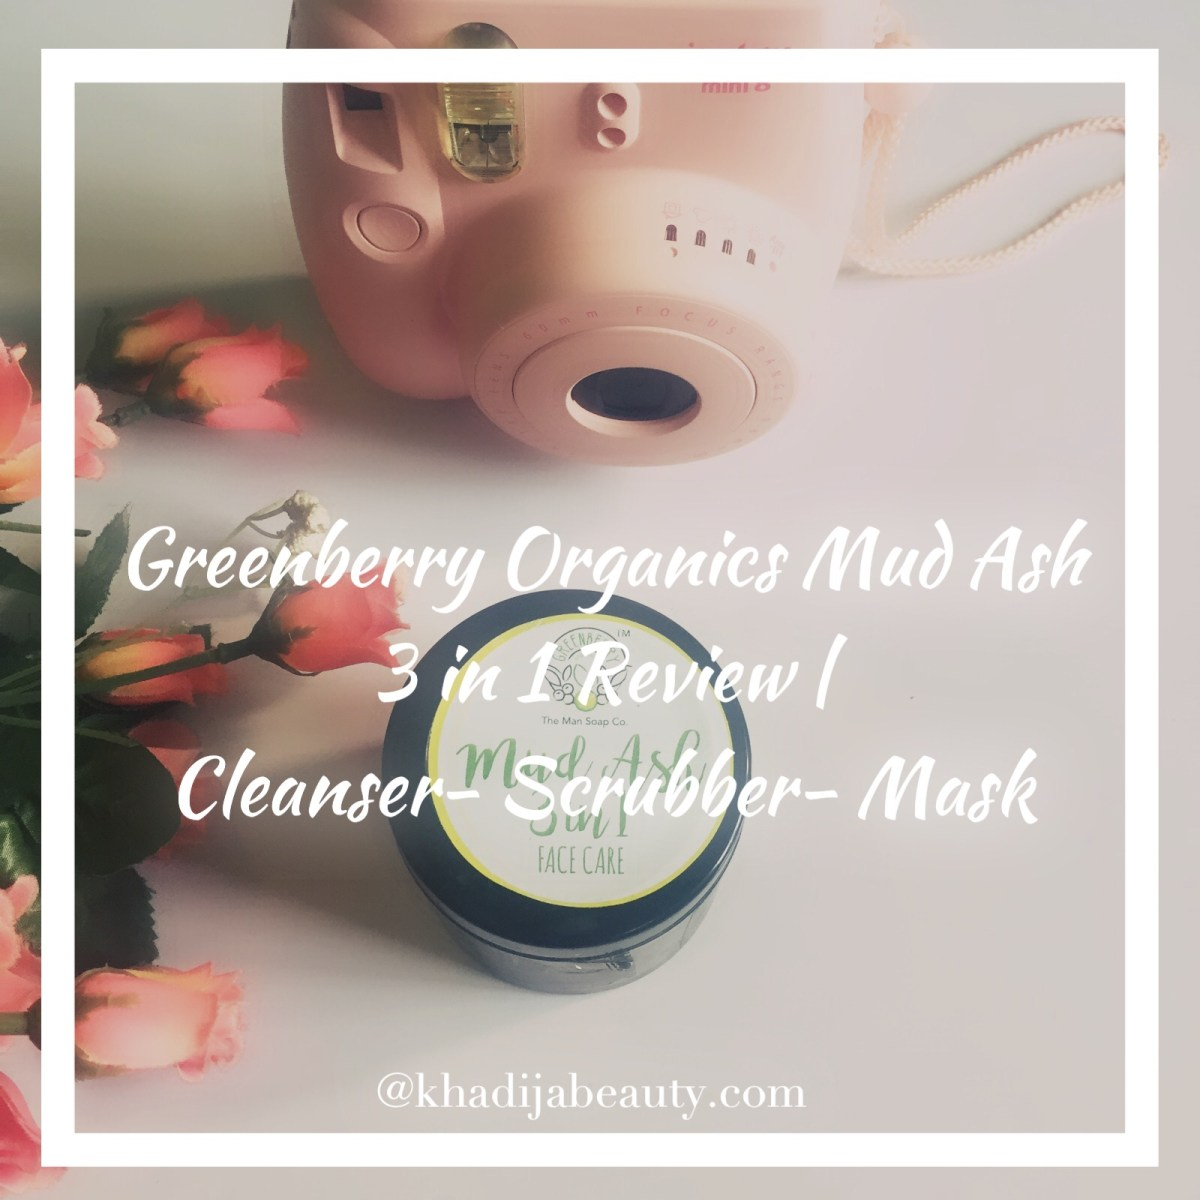 Greenberry Organics Mud Ash 3 In 1 Face Care Review| Cleanser- Scrub- Mask